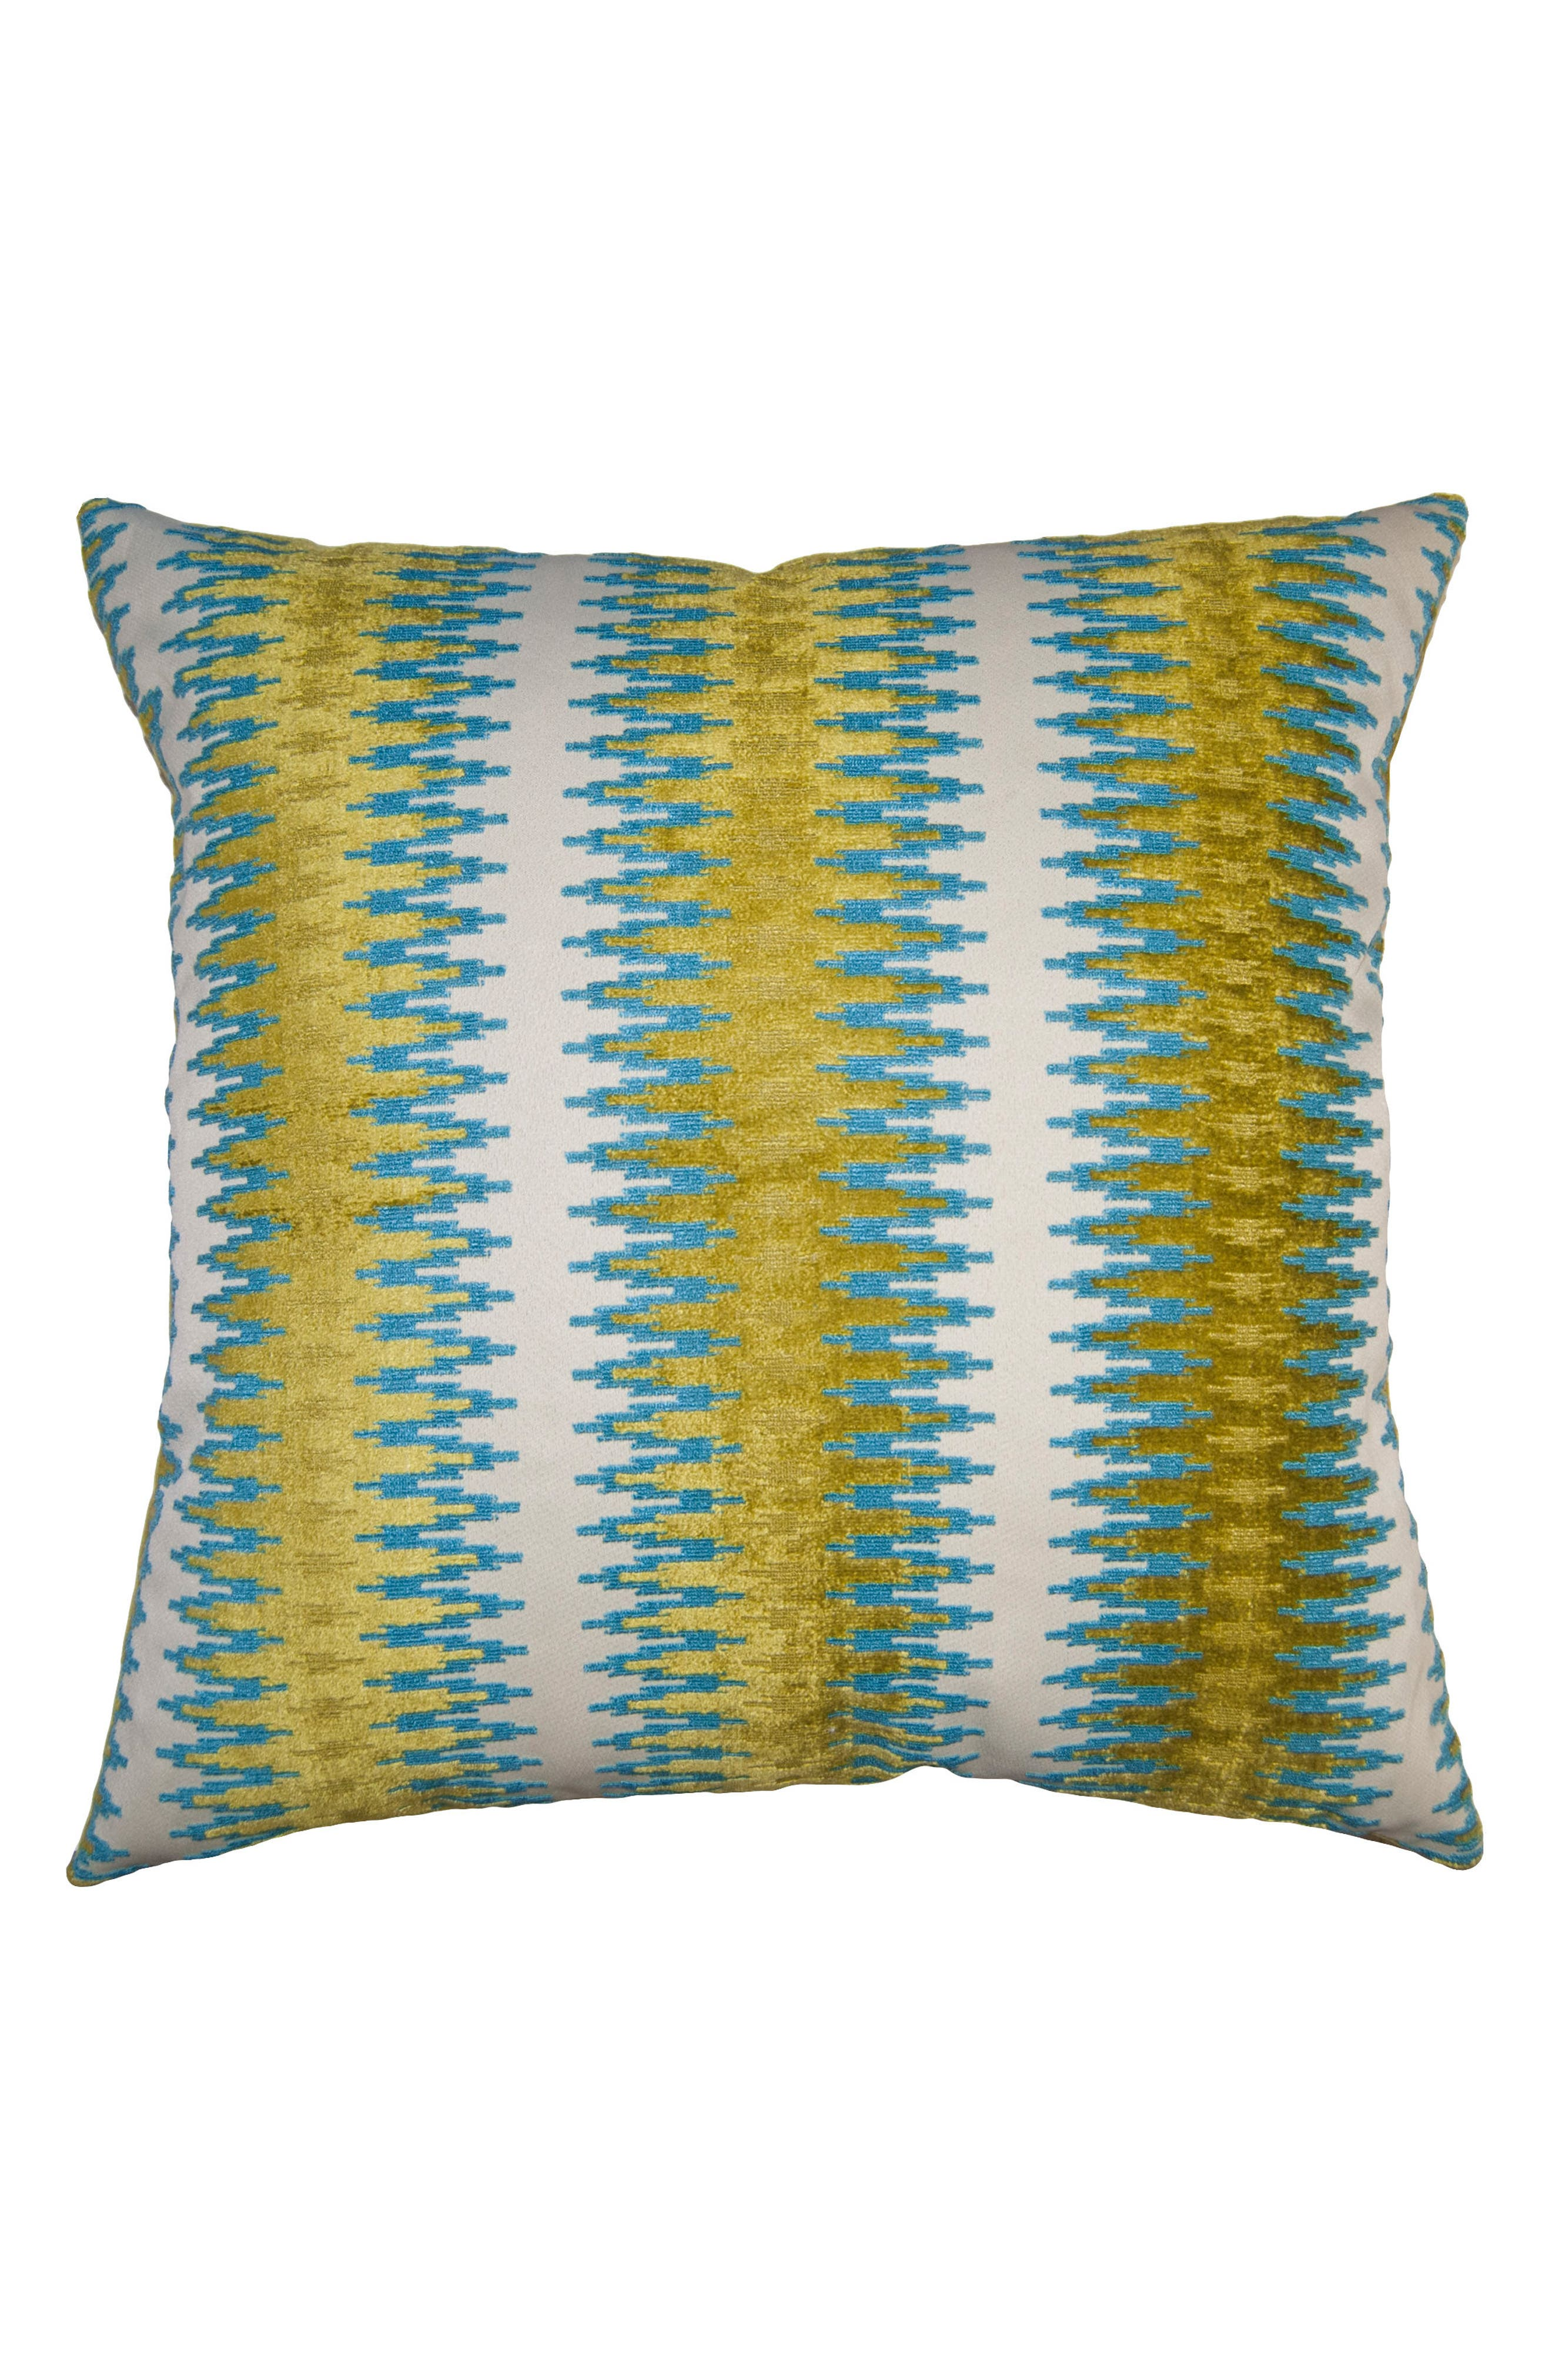 Square Feathers Riviera Radar Accent Pillow